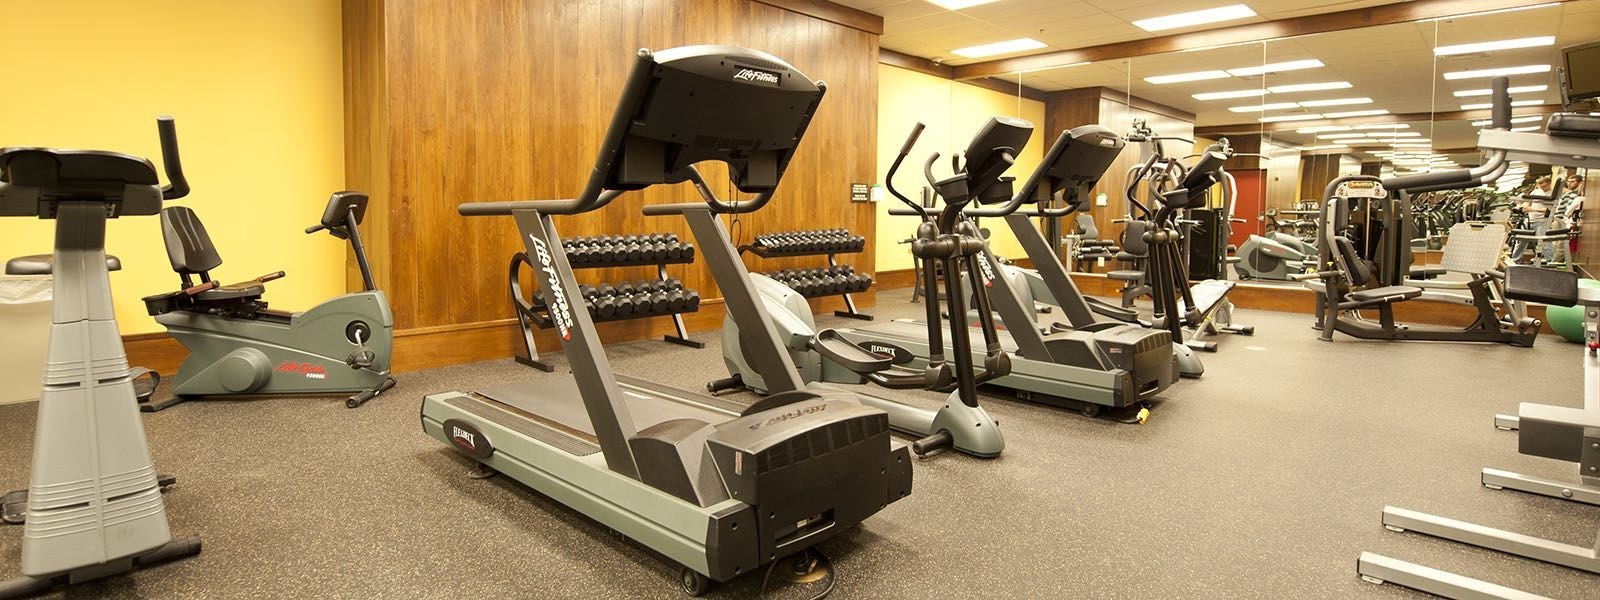 workout room with weight machines